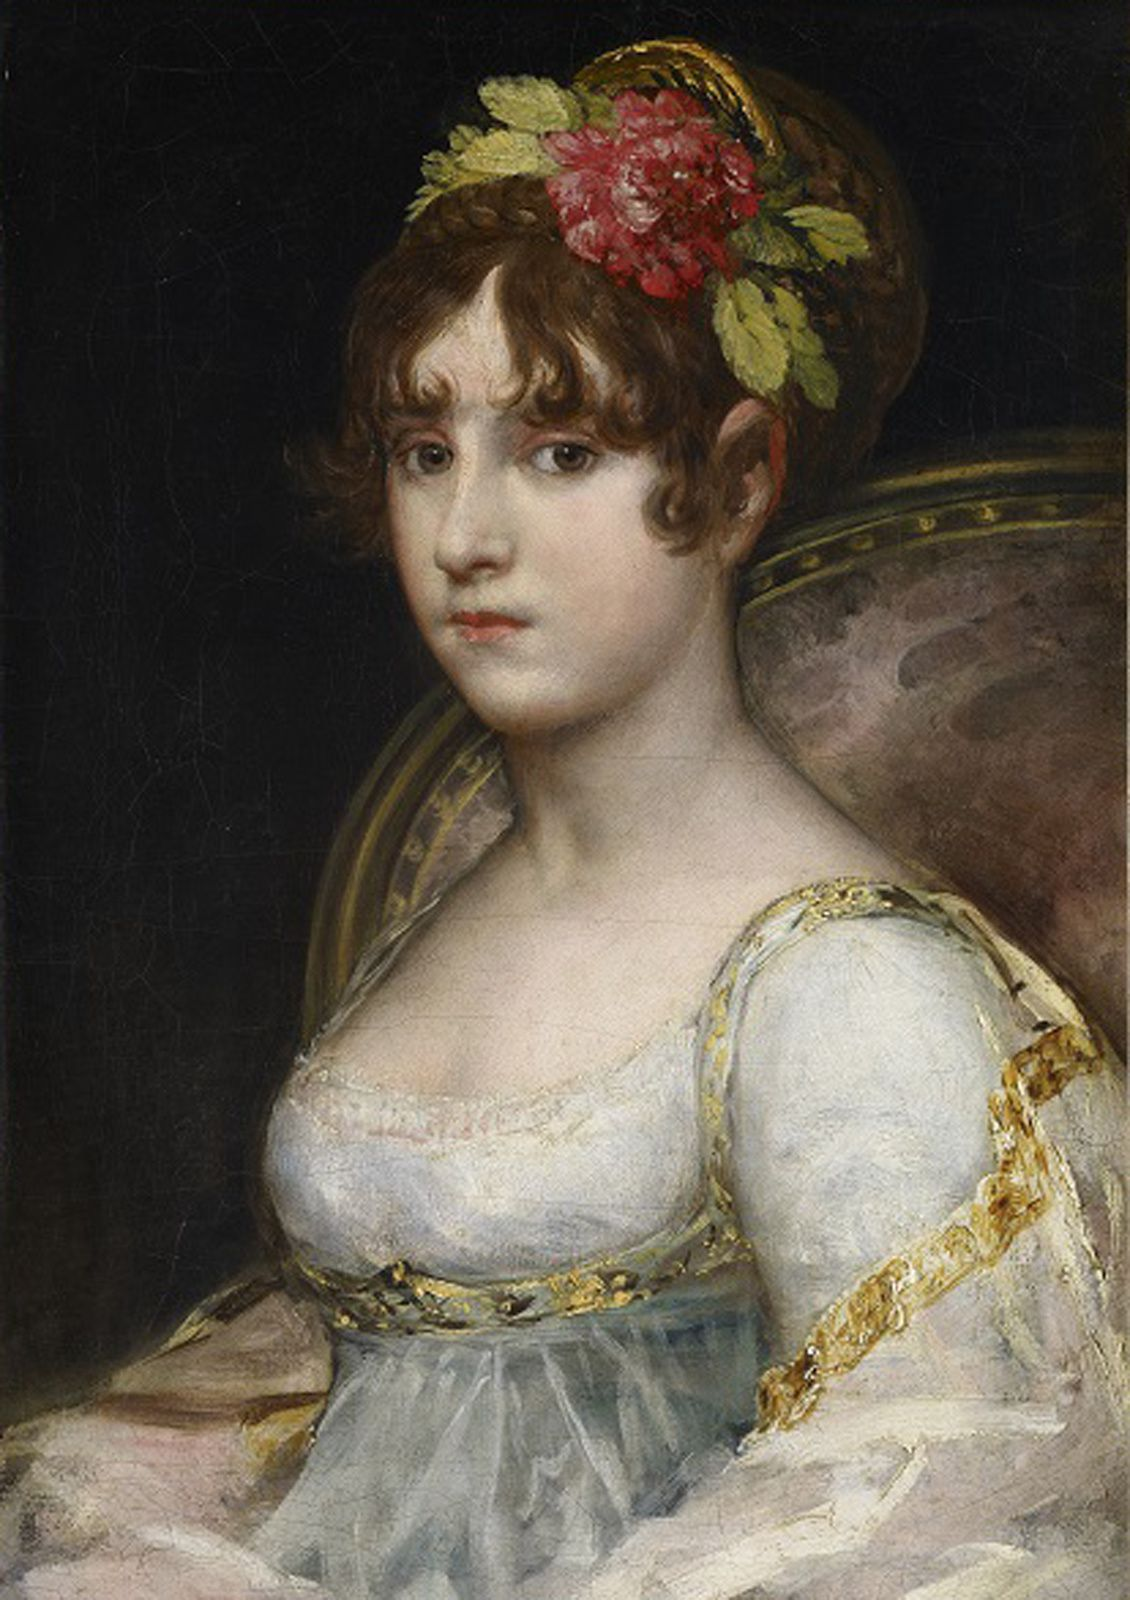 """Portrait de la contesse de Haro"", vers 1802-1803 de Francesco de Goya y Lucientes - Courtesy Collection Alicia KOPLOWITZ - Grupo Omega Capital"